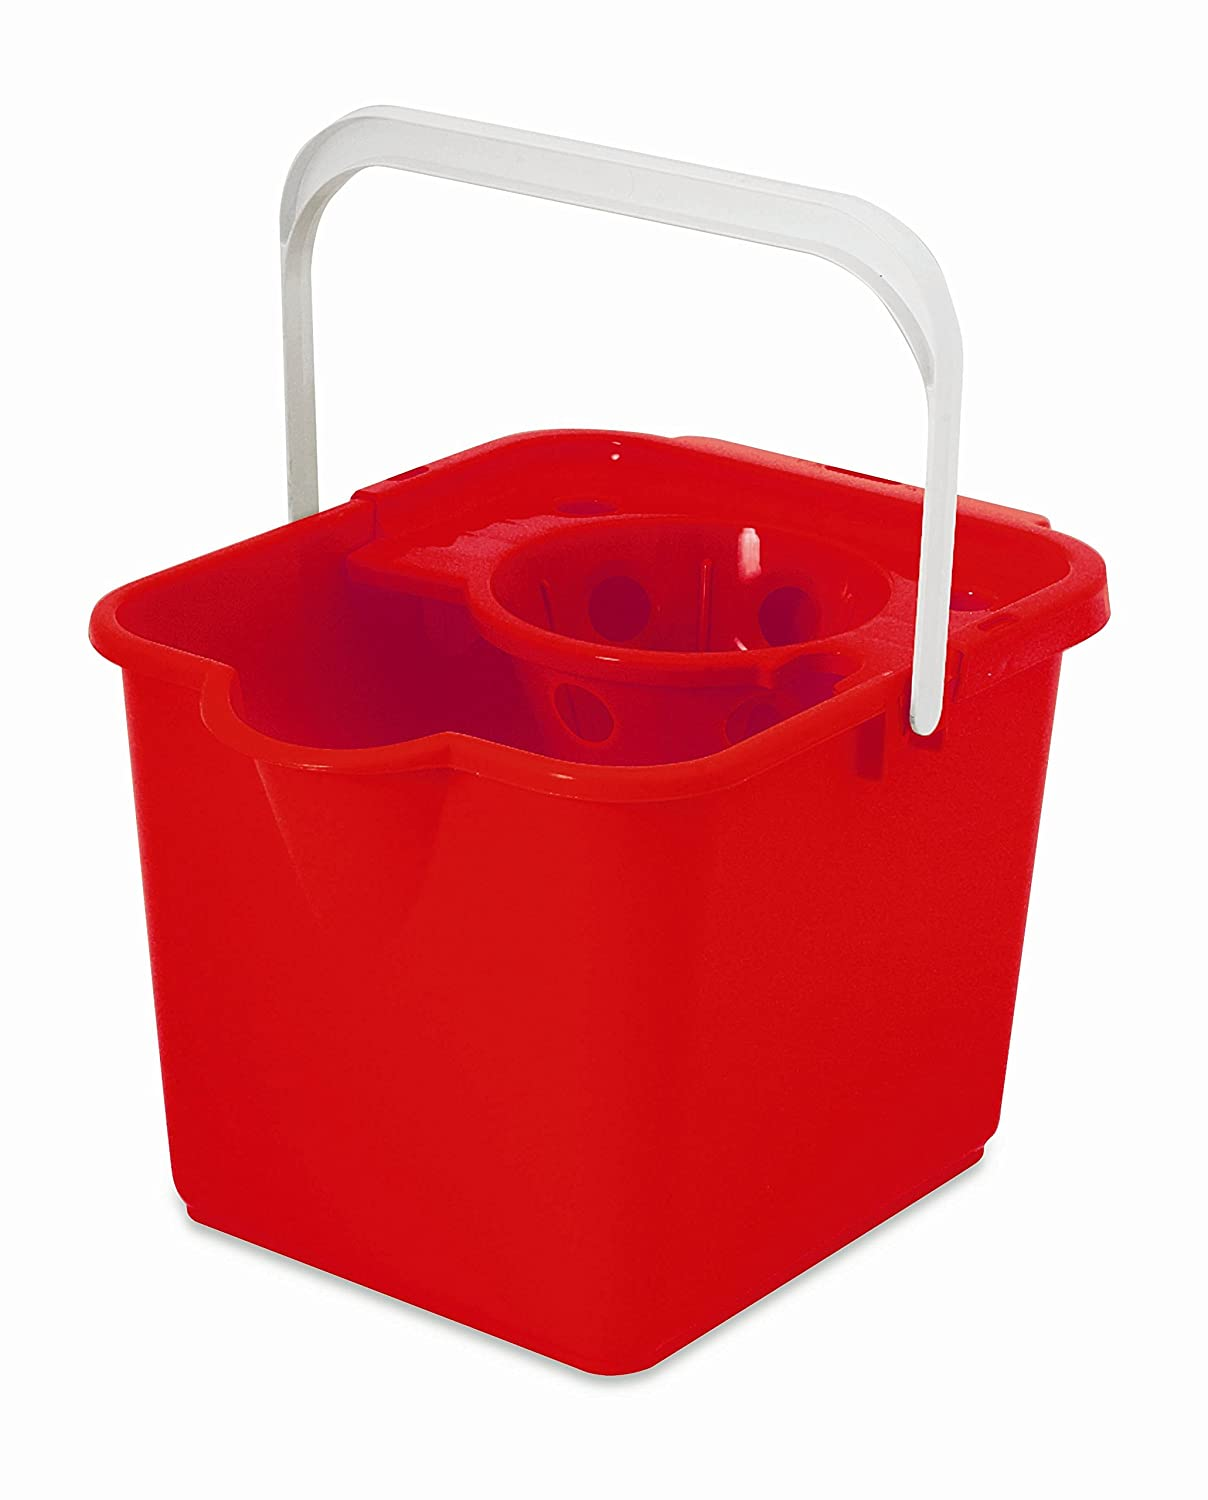 ADDIS 12 Litre Mop Pail and Wringer, Green 510253